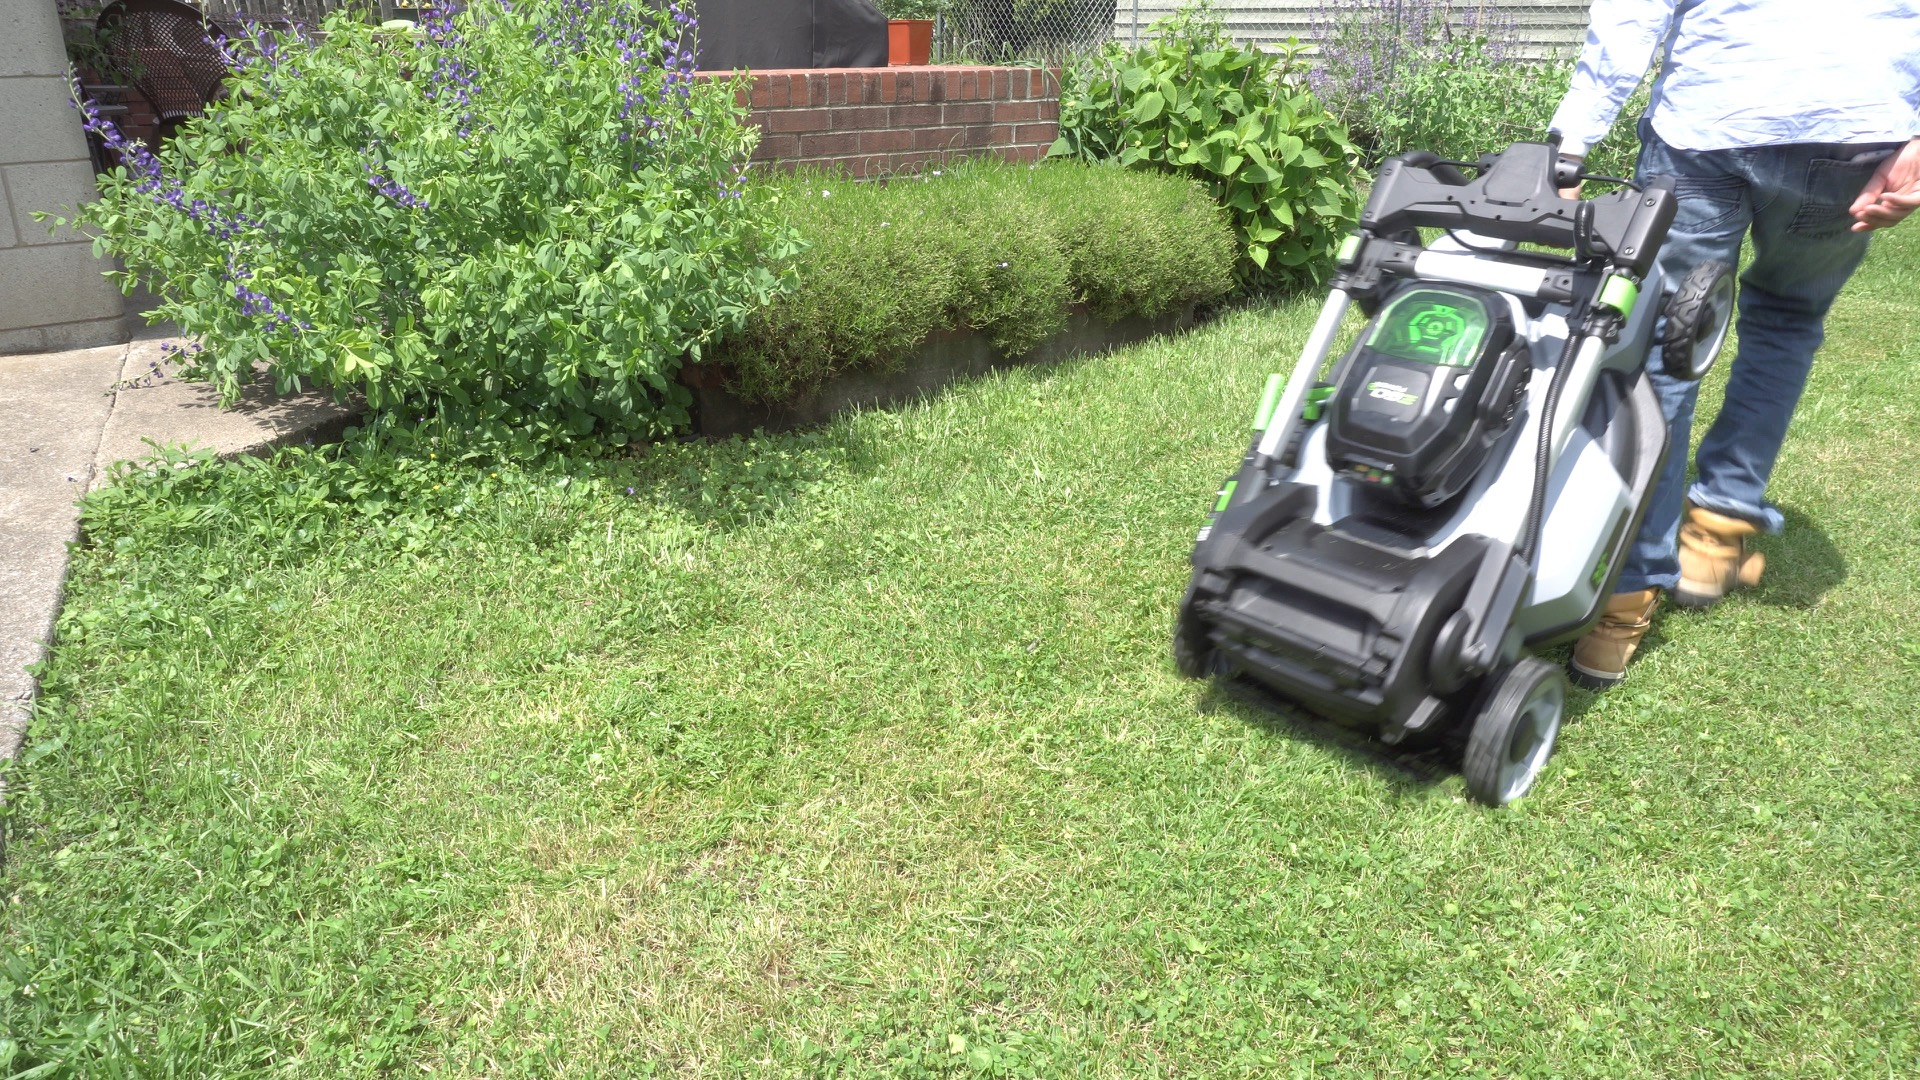 EGO Power Mower 14